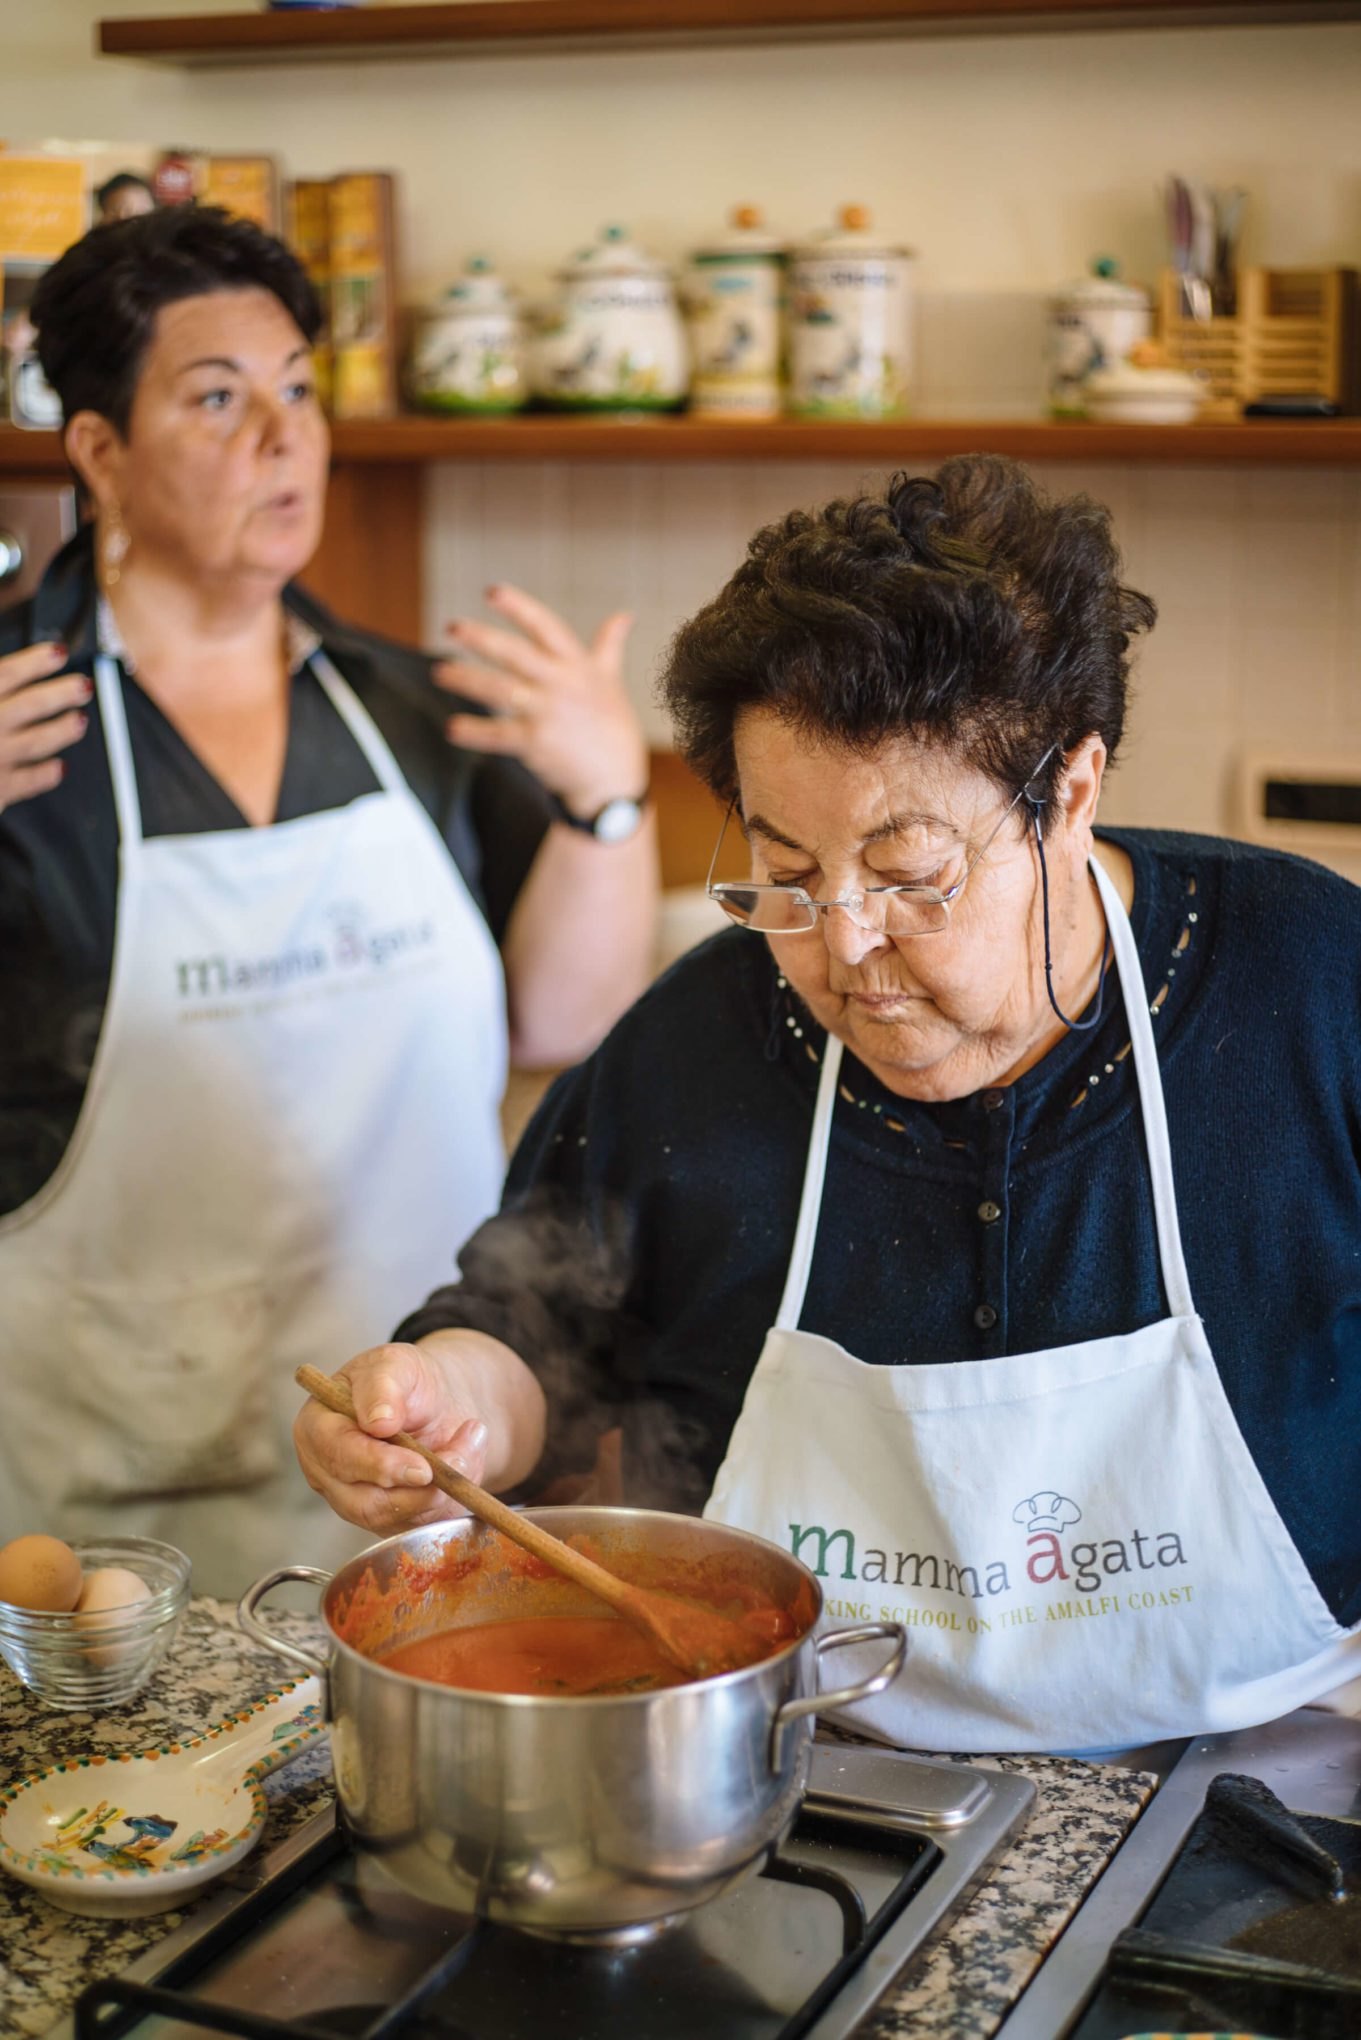 Mamma Agata makes her famous tomato sauce in Ravello Italy, the taste sf san francisco